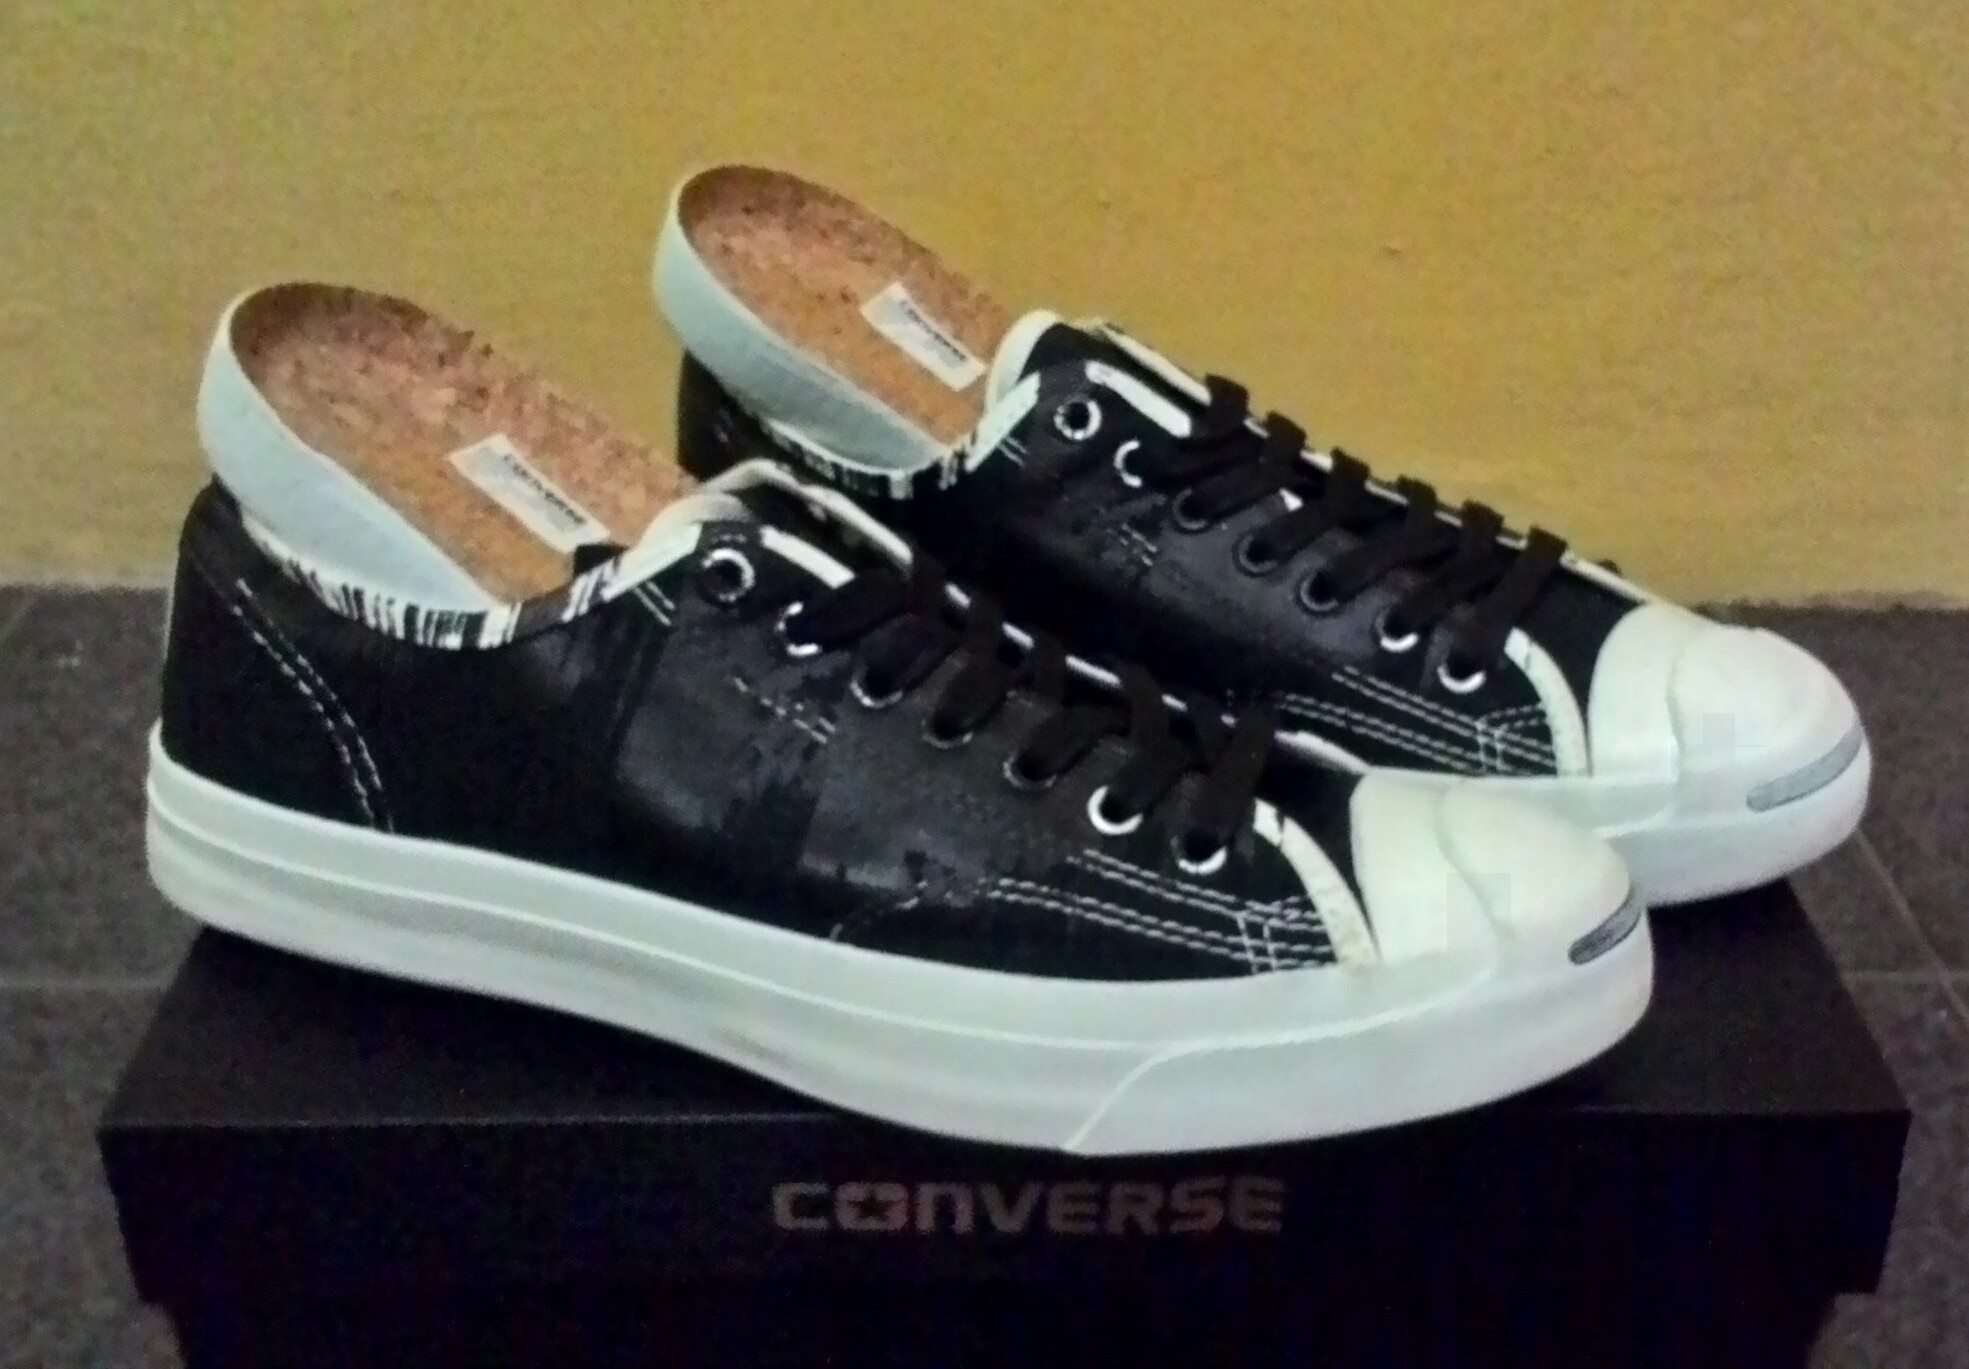 Buy jual converse jack purcell original   53% off! 524c208d09